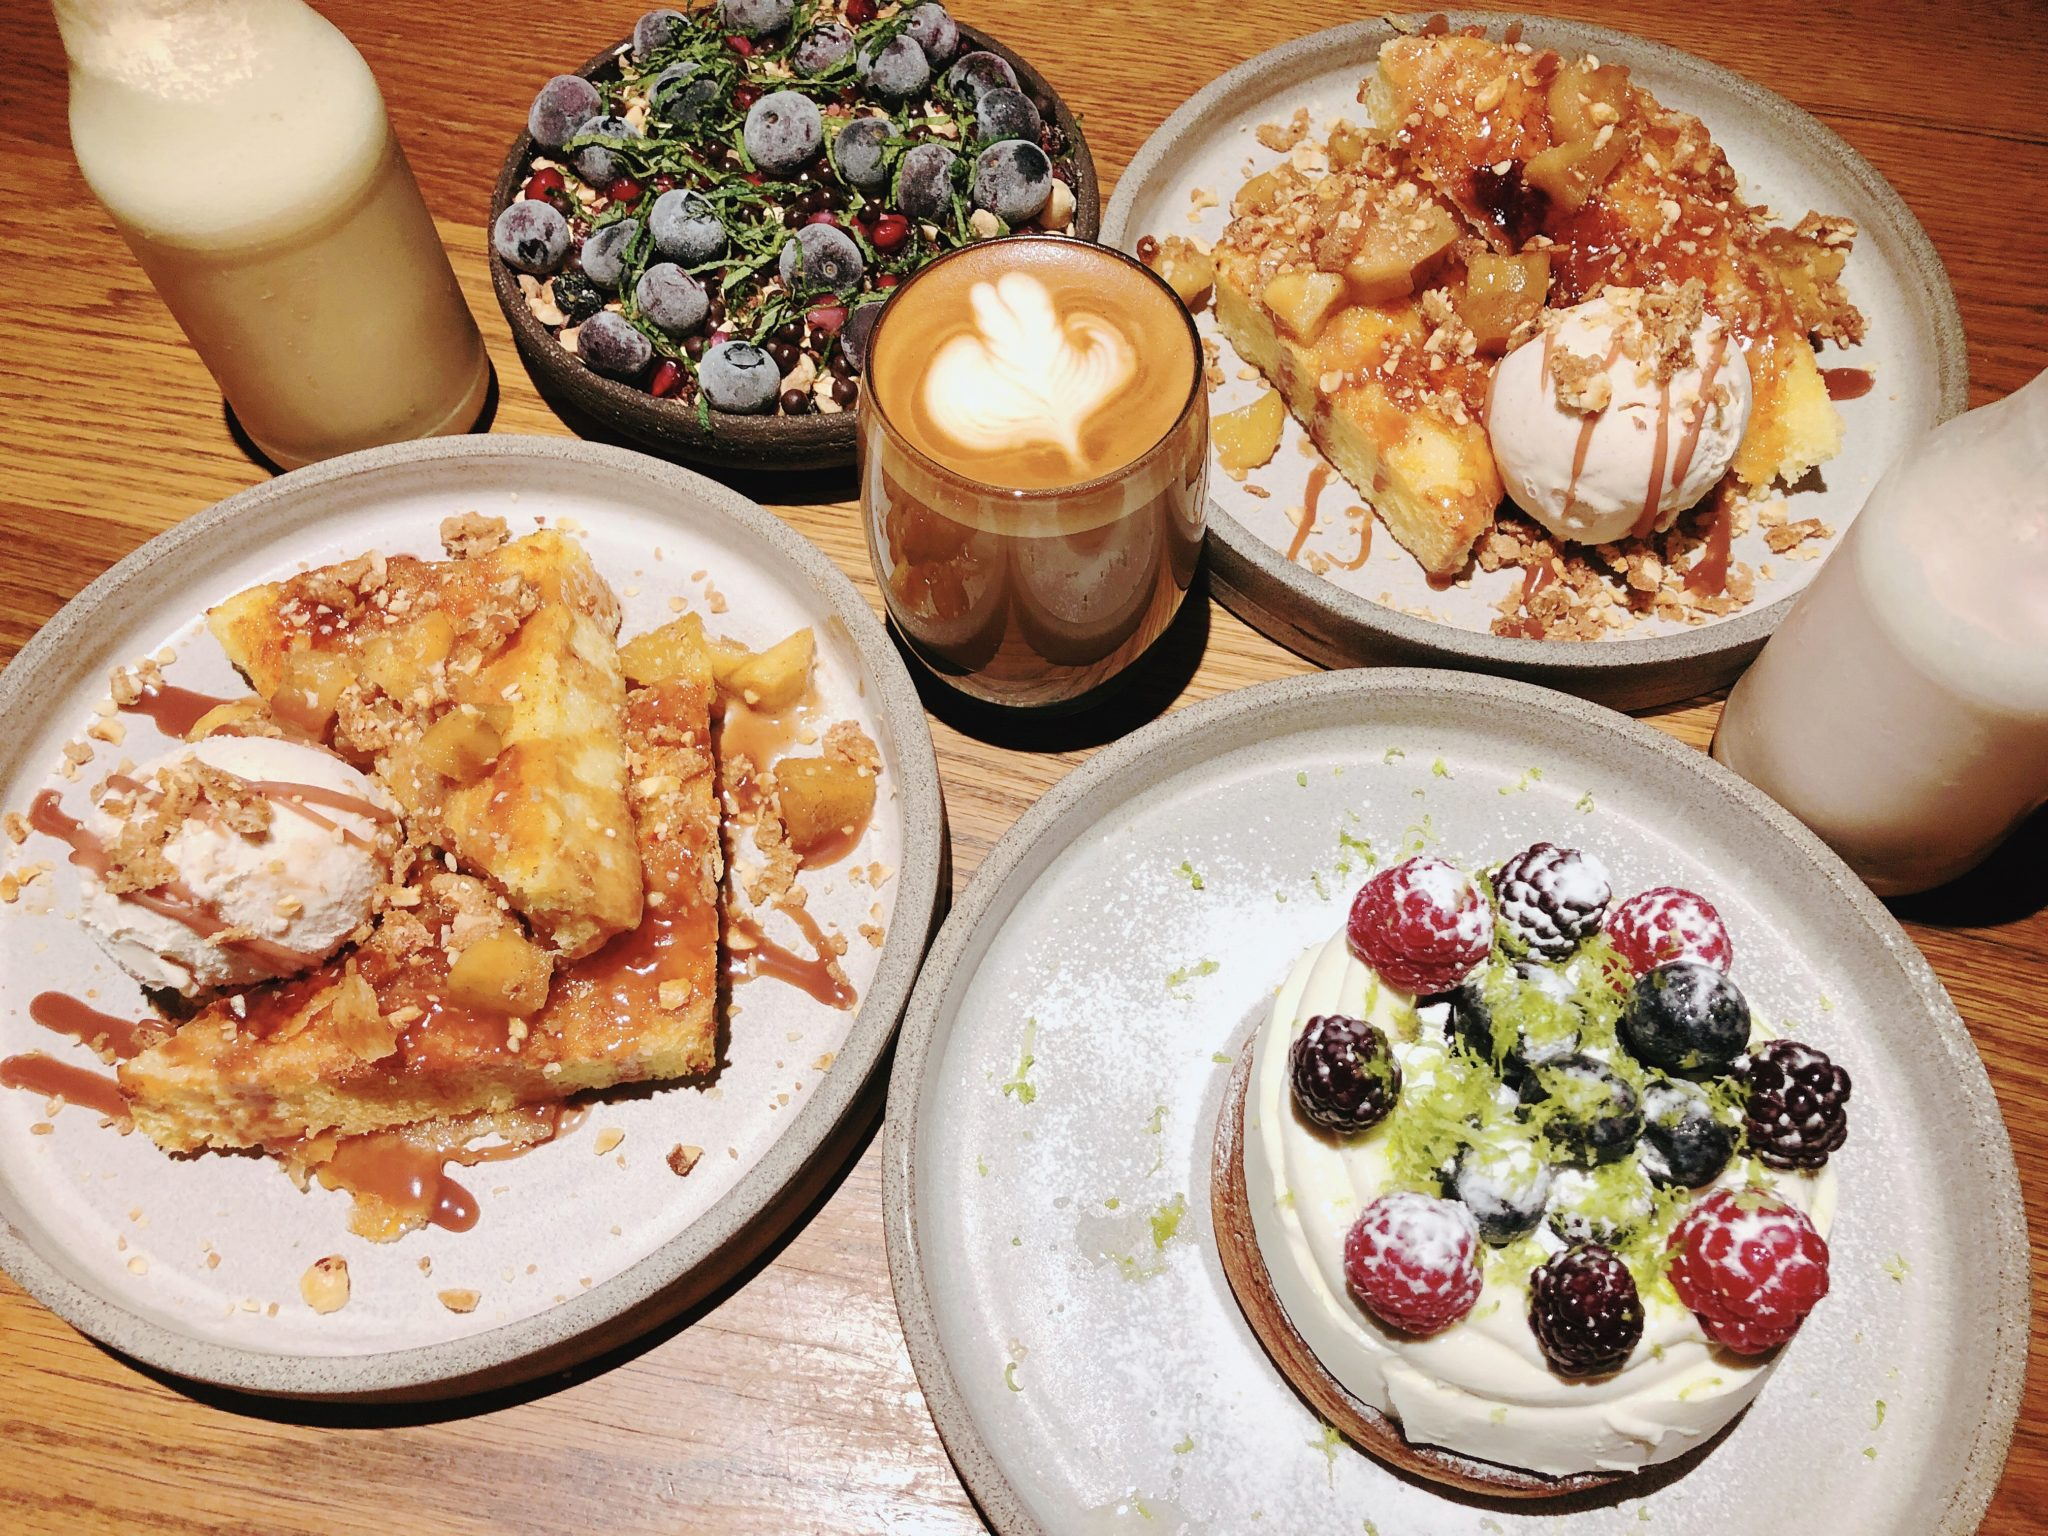 Opso food spread